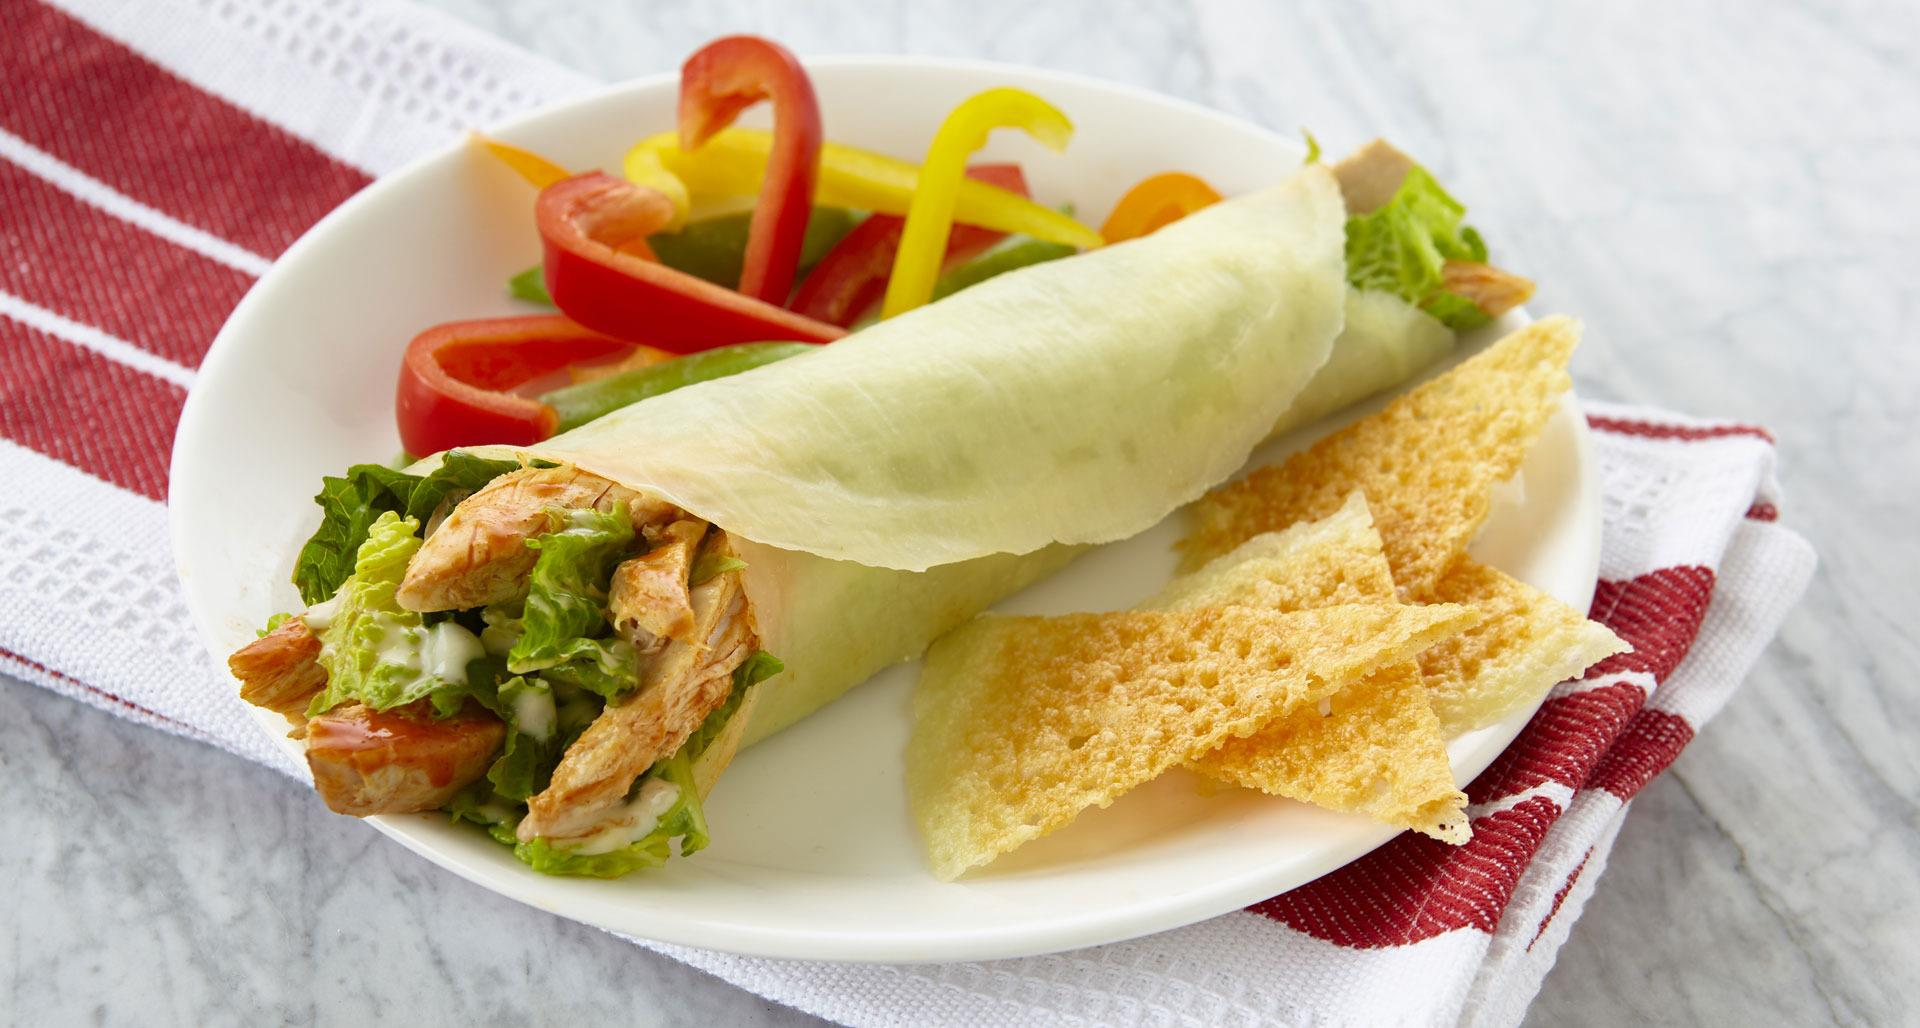 Folios Cheese Wraps Go Viral with Keto-Dieters